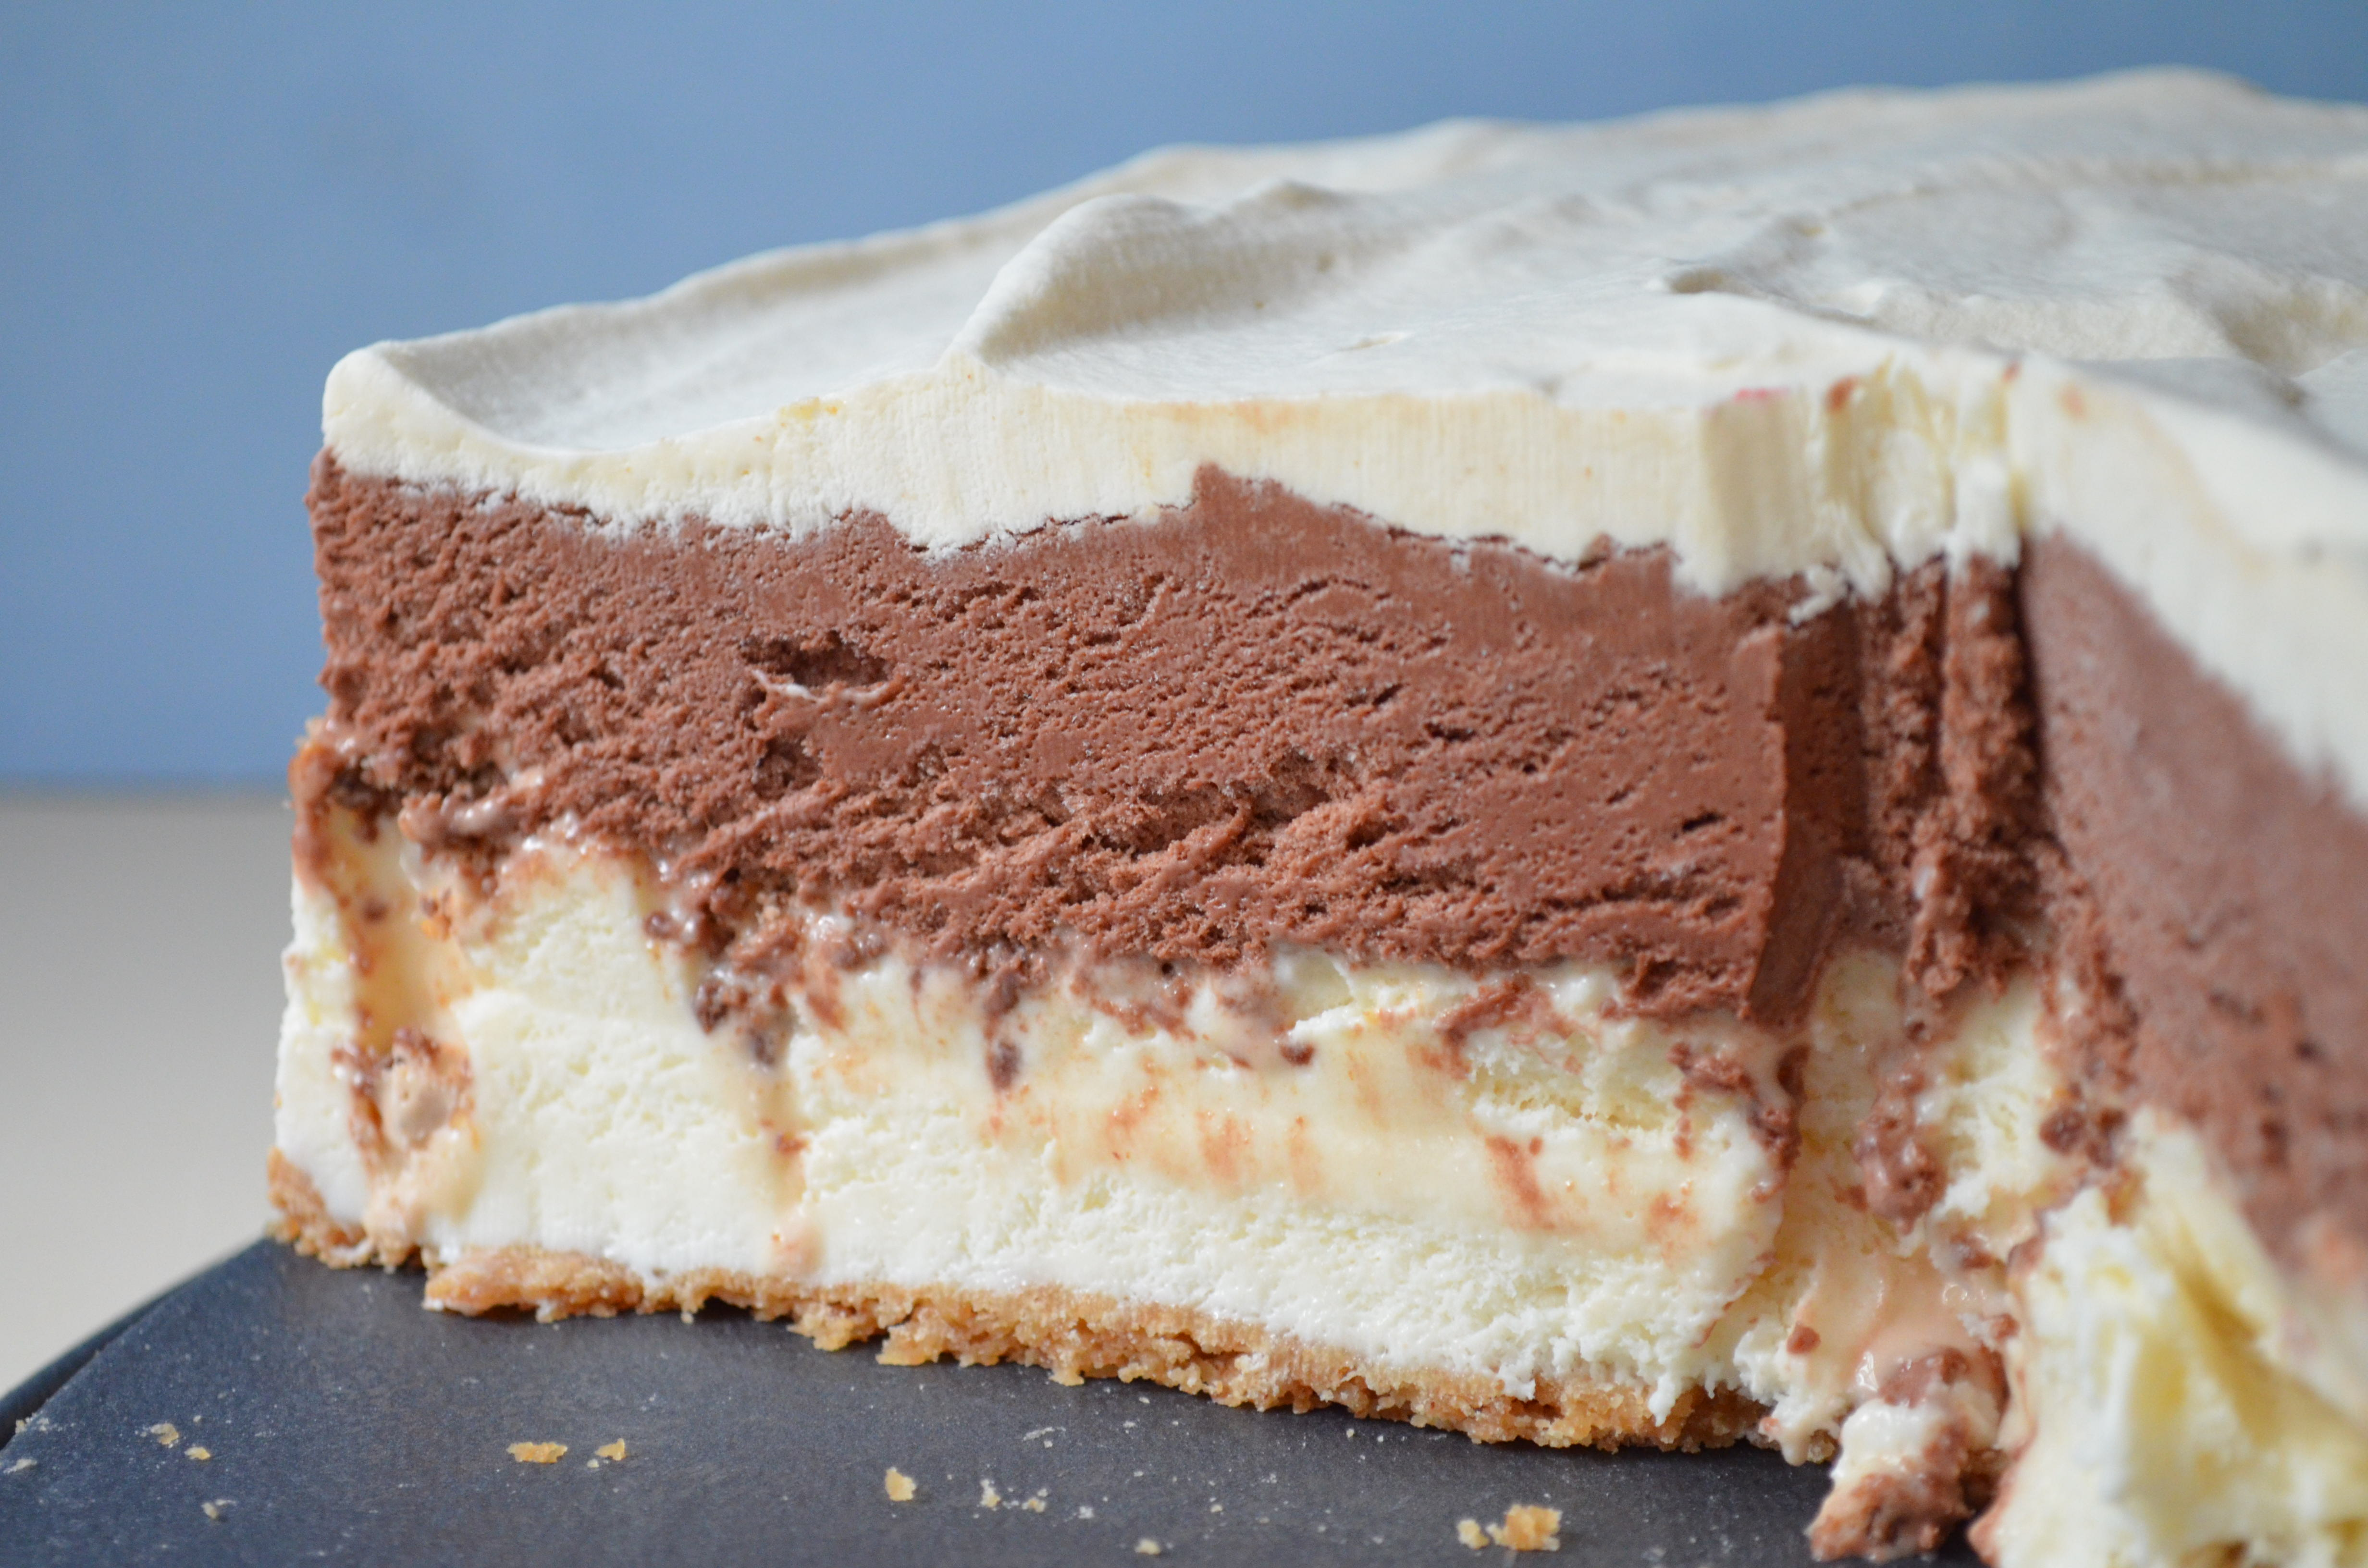 ... Crowd-Pleasing Toffee Crunch Ice Cream Cake. | I Sing In The Kitchen